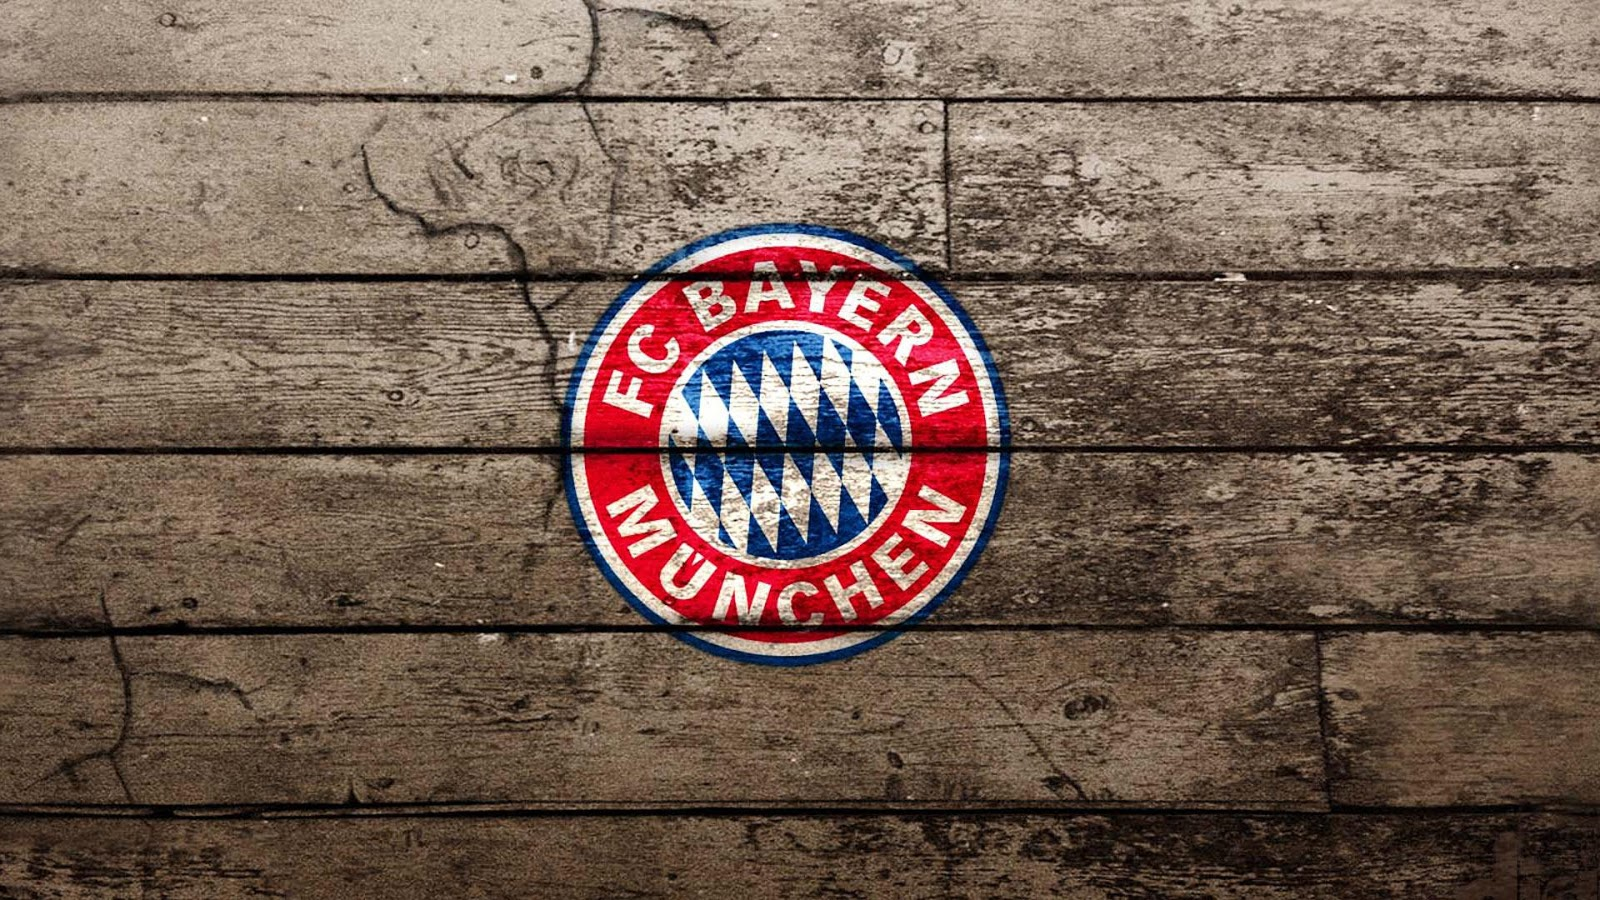 Bayern Munich Wallpapers | Wallpaper Albums